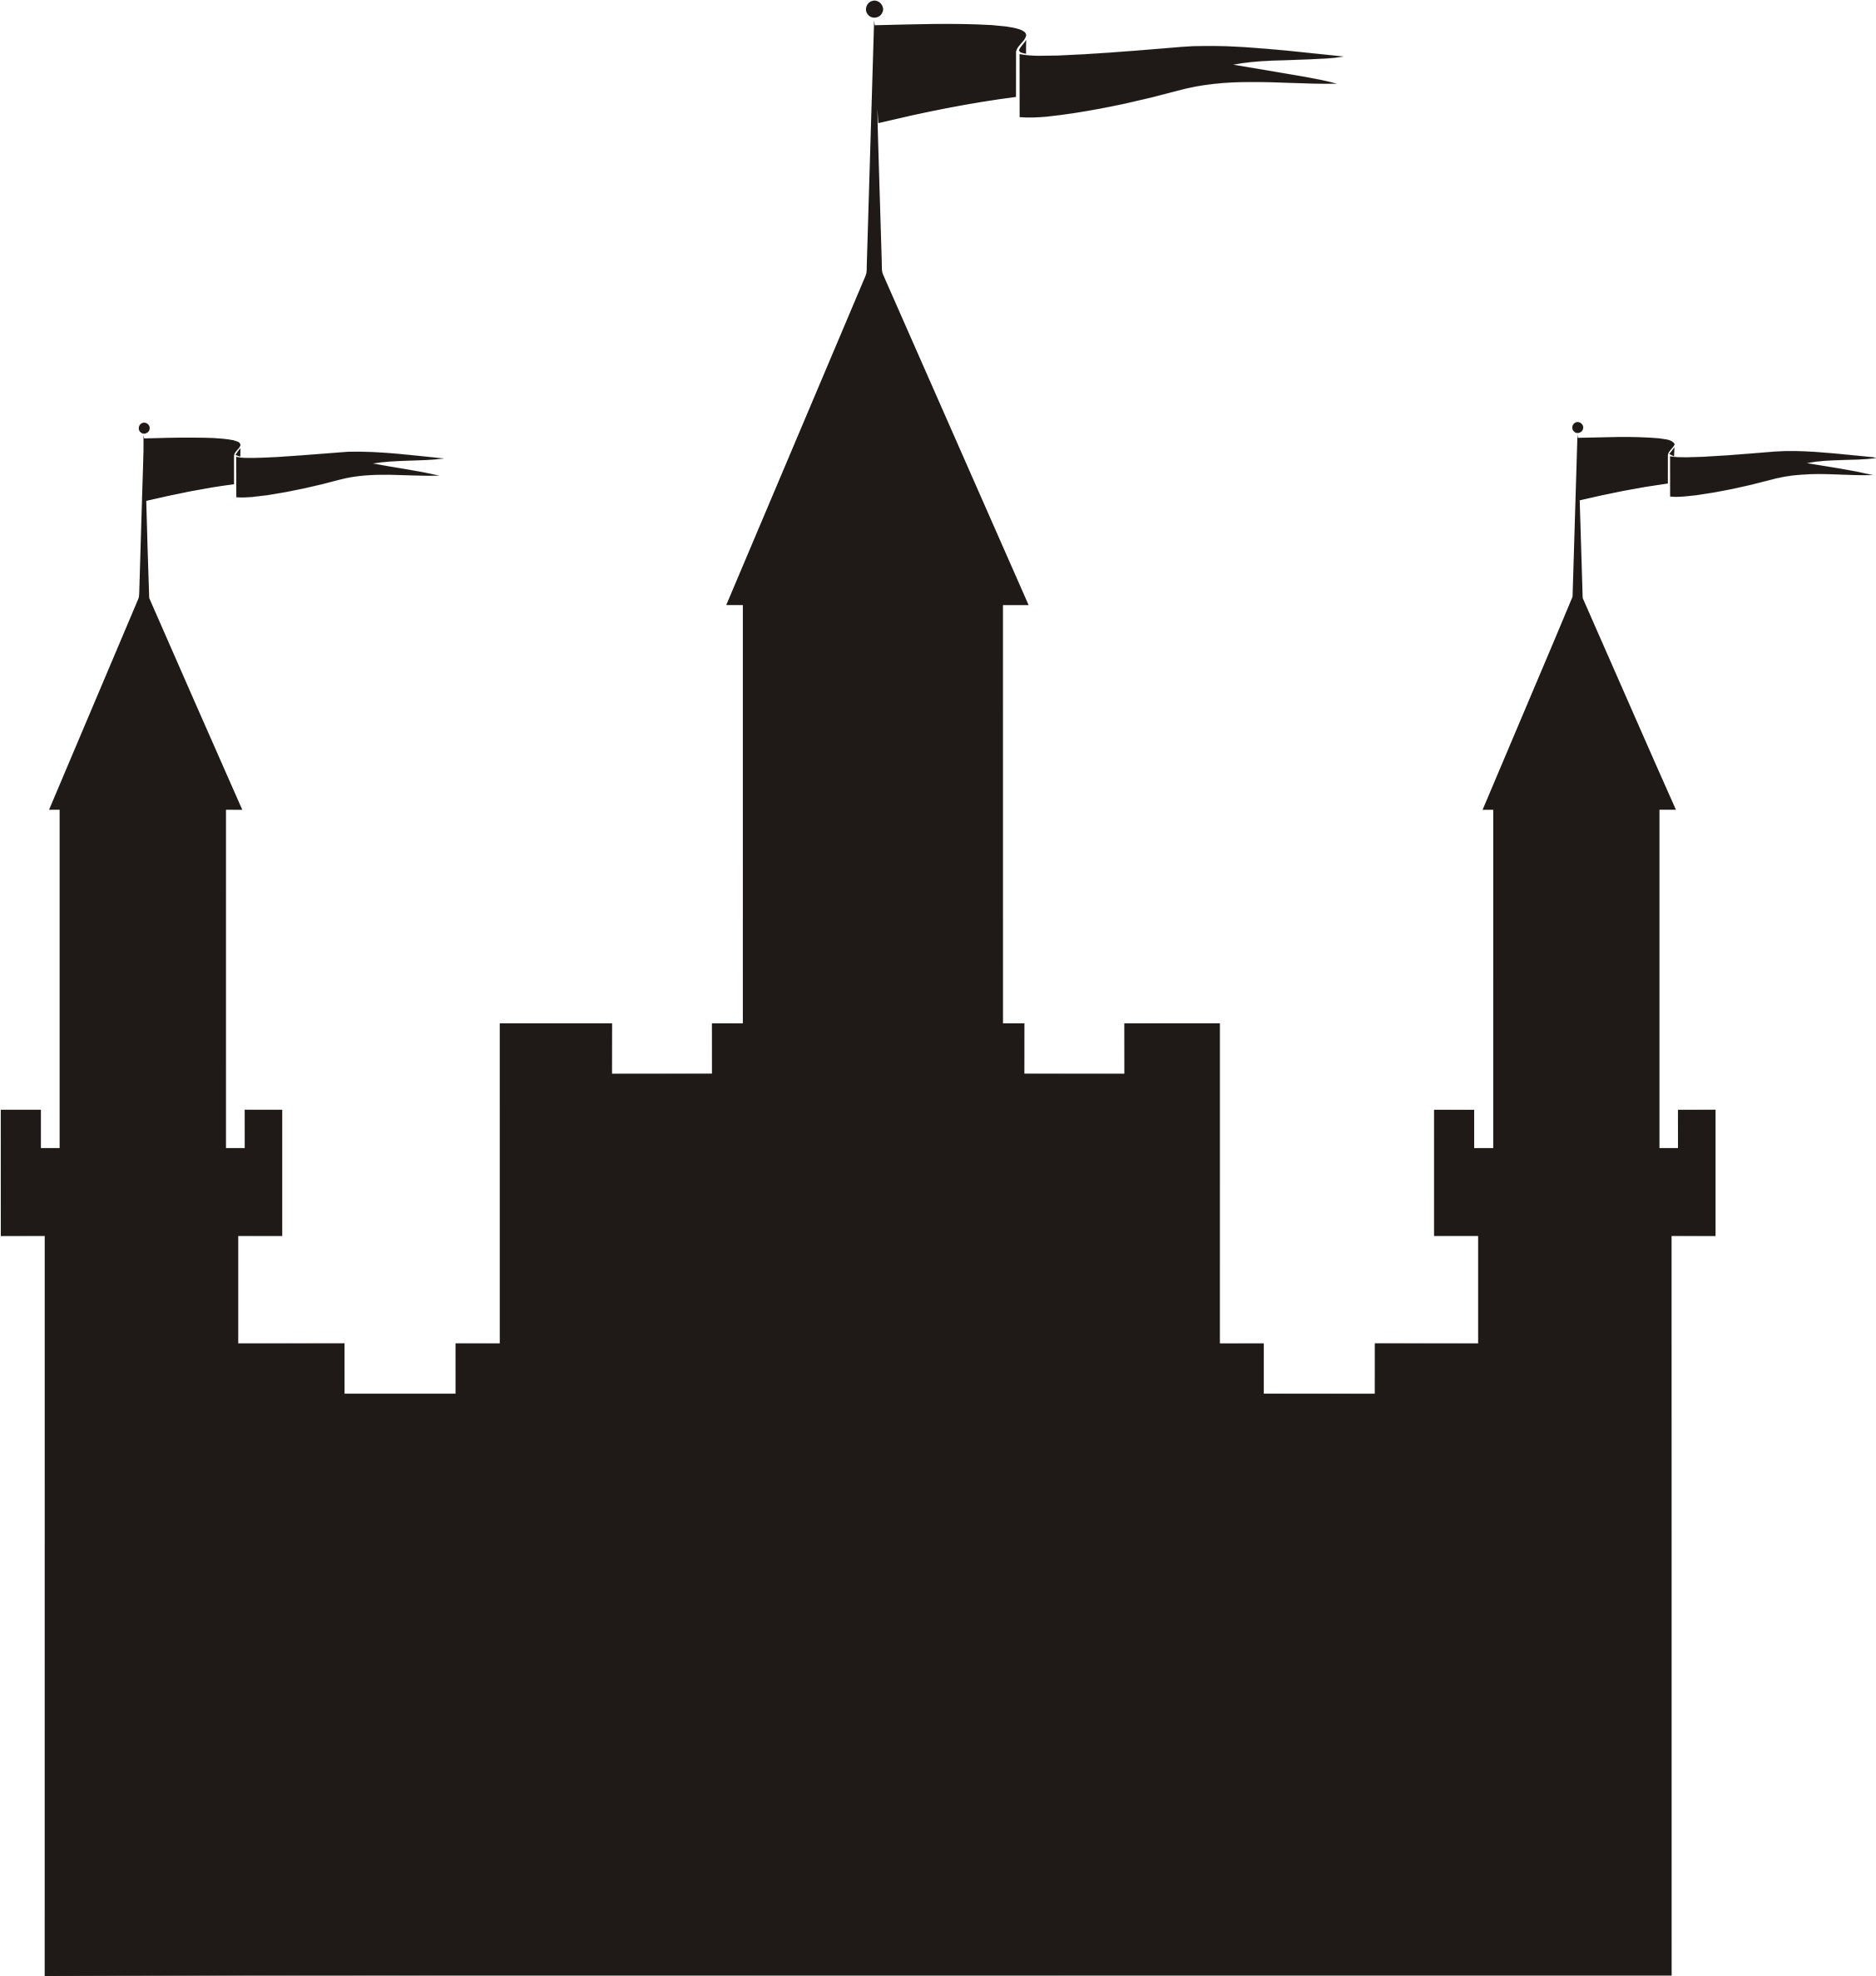 Free Castle Silhouettes Cliparts, Download Free Clip Art.